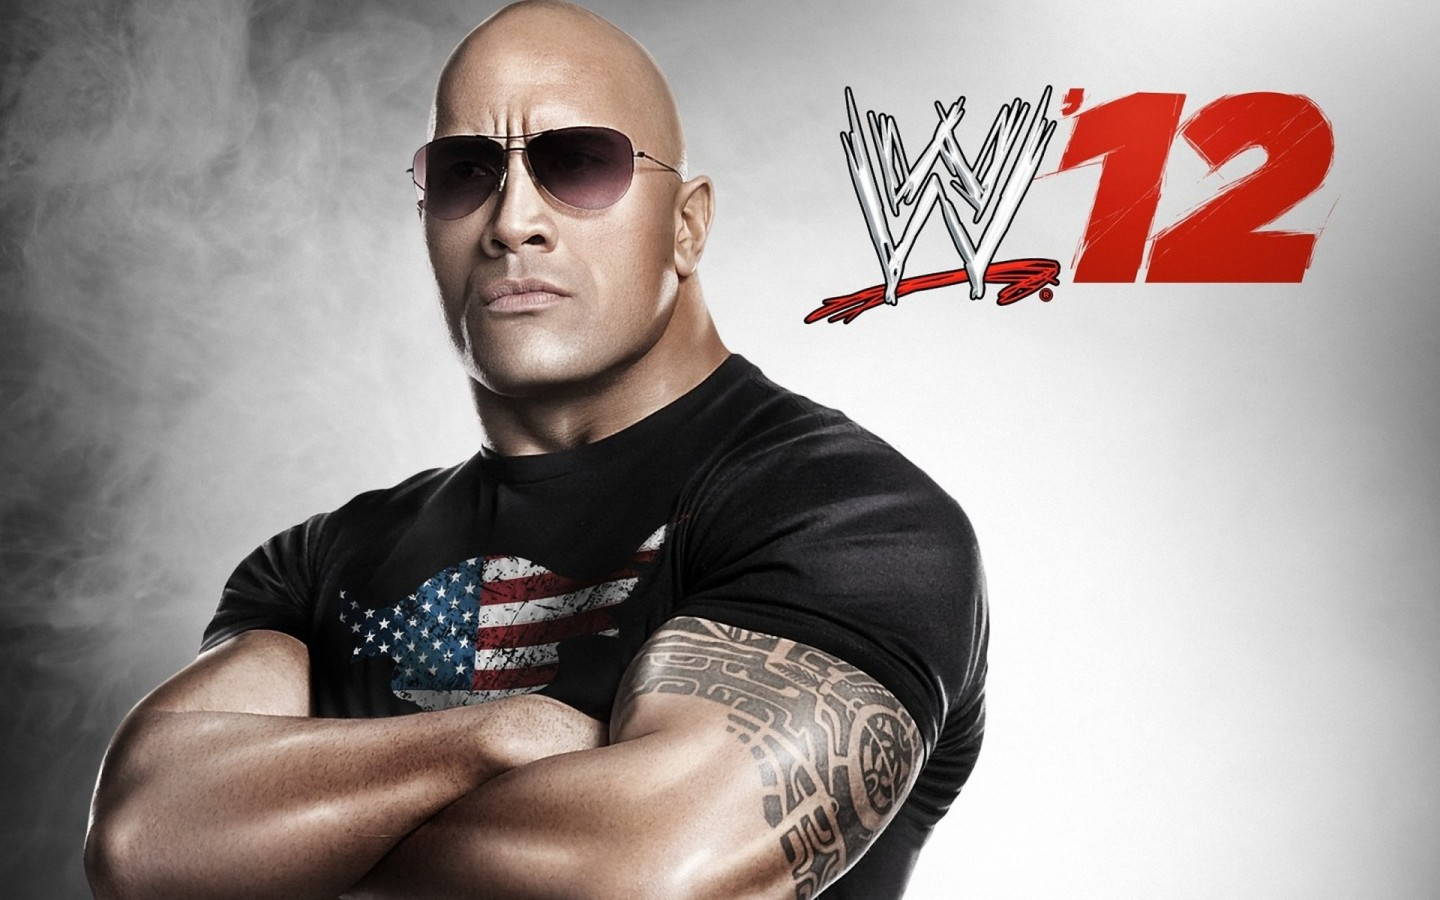 Red Bull Wallpaper Hd Iphone Wwe 12 The Rock Wallpapers Hd Wallpapers Id 10679